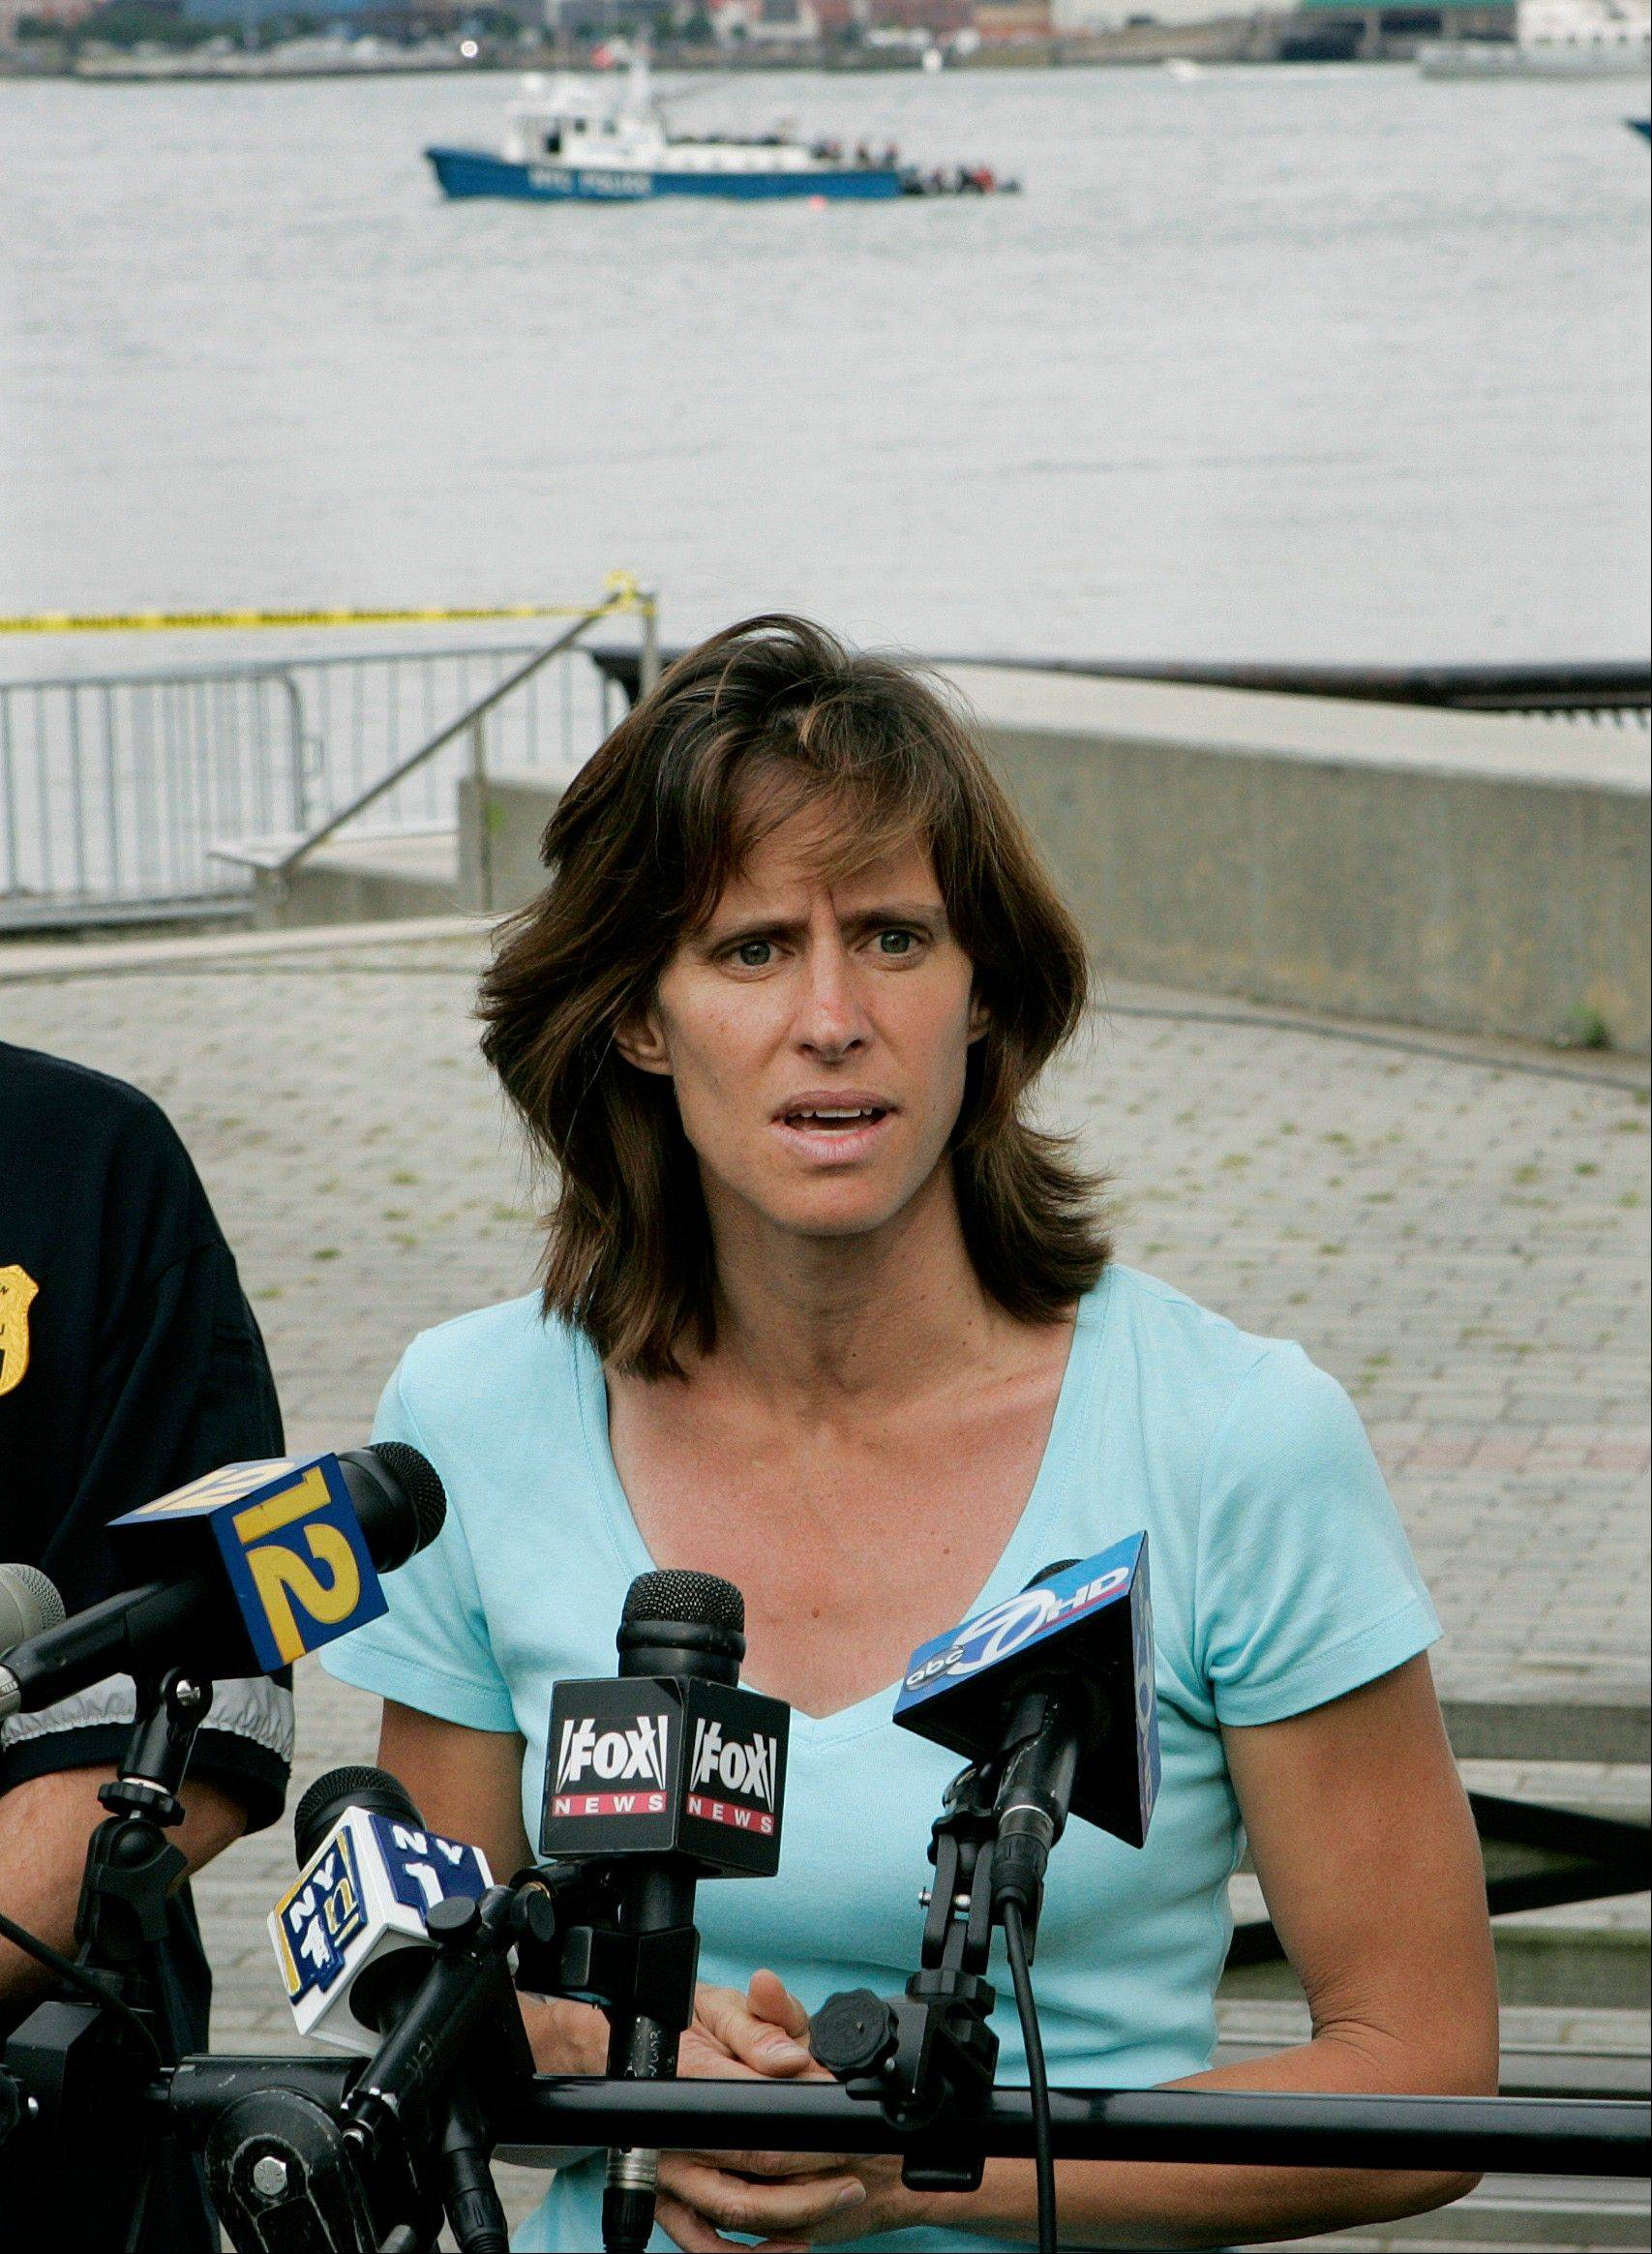 Hoboken Mayor Dawn Zimmer claims the Christie administration withheld millions of dollars in recovery grants because she refused to sign off on a politically connected development. MSNBC first reported her comments Saturday.